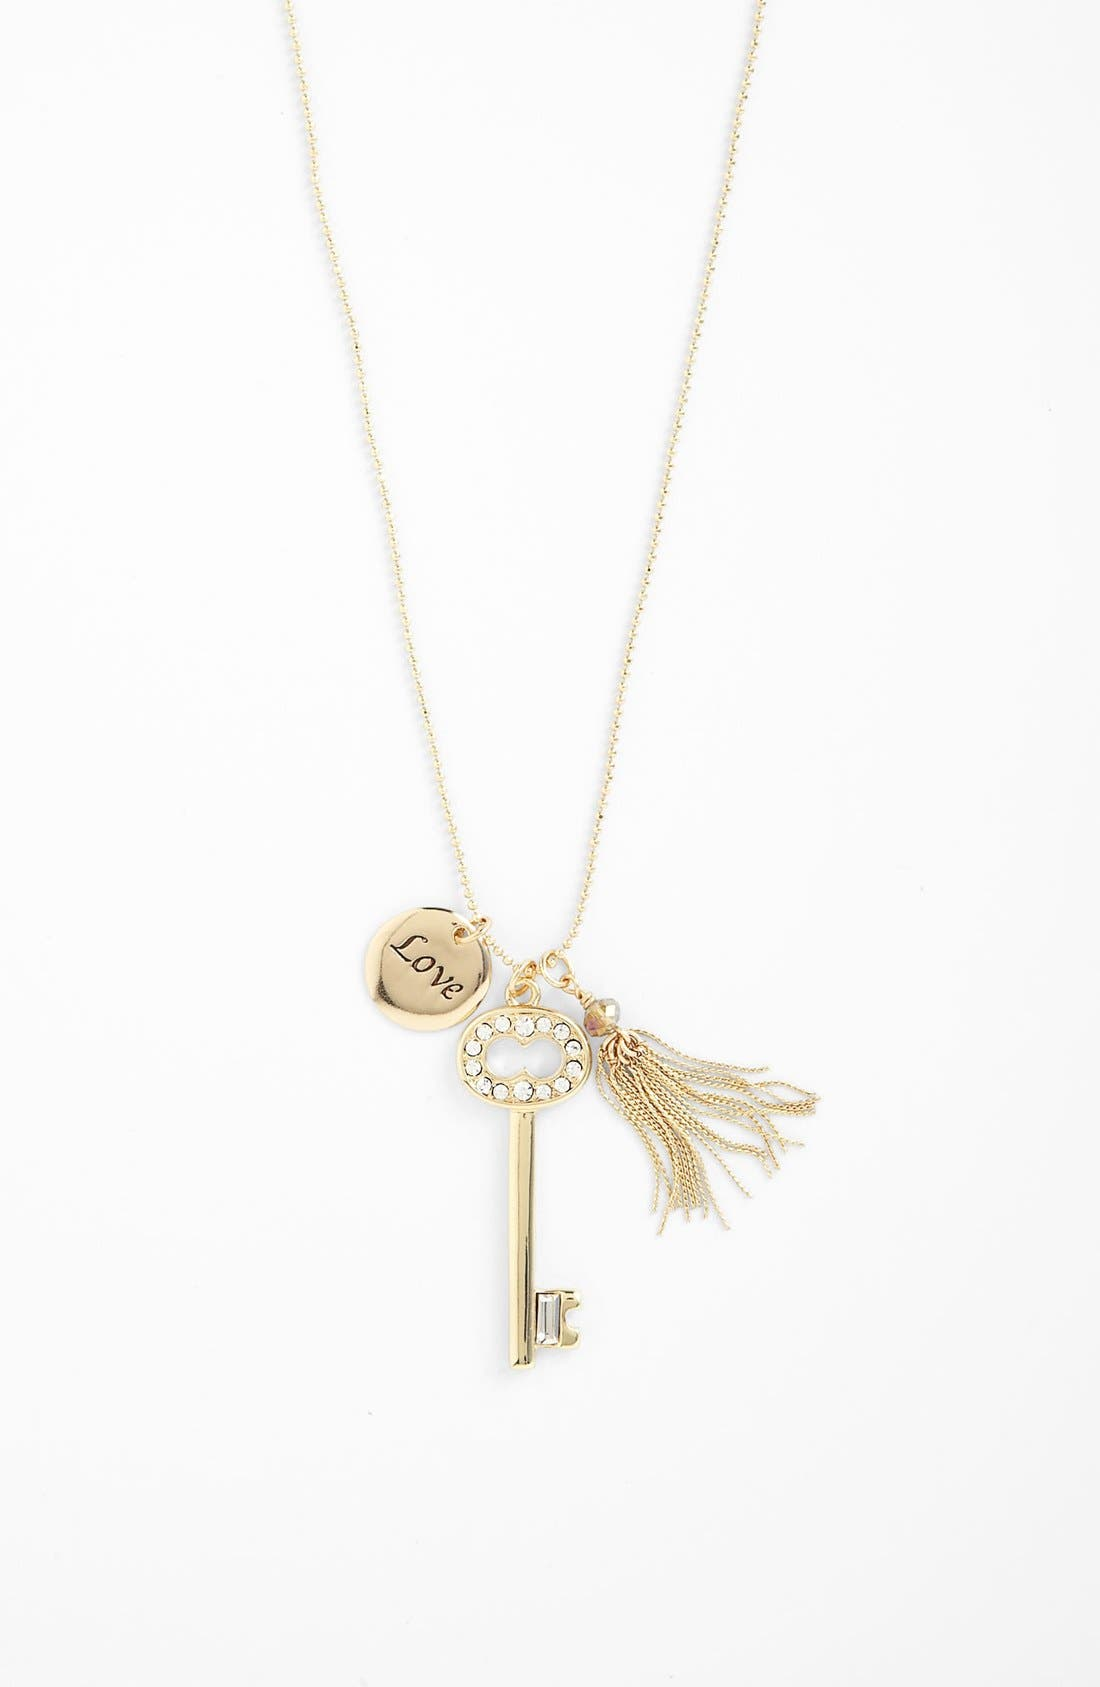 Main Image - Nordstrom 'Love Languages' Long Charm Necklace